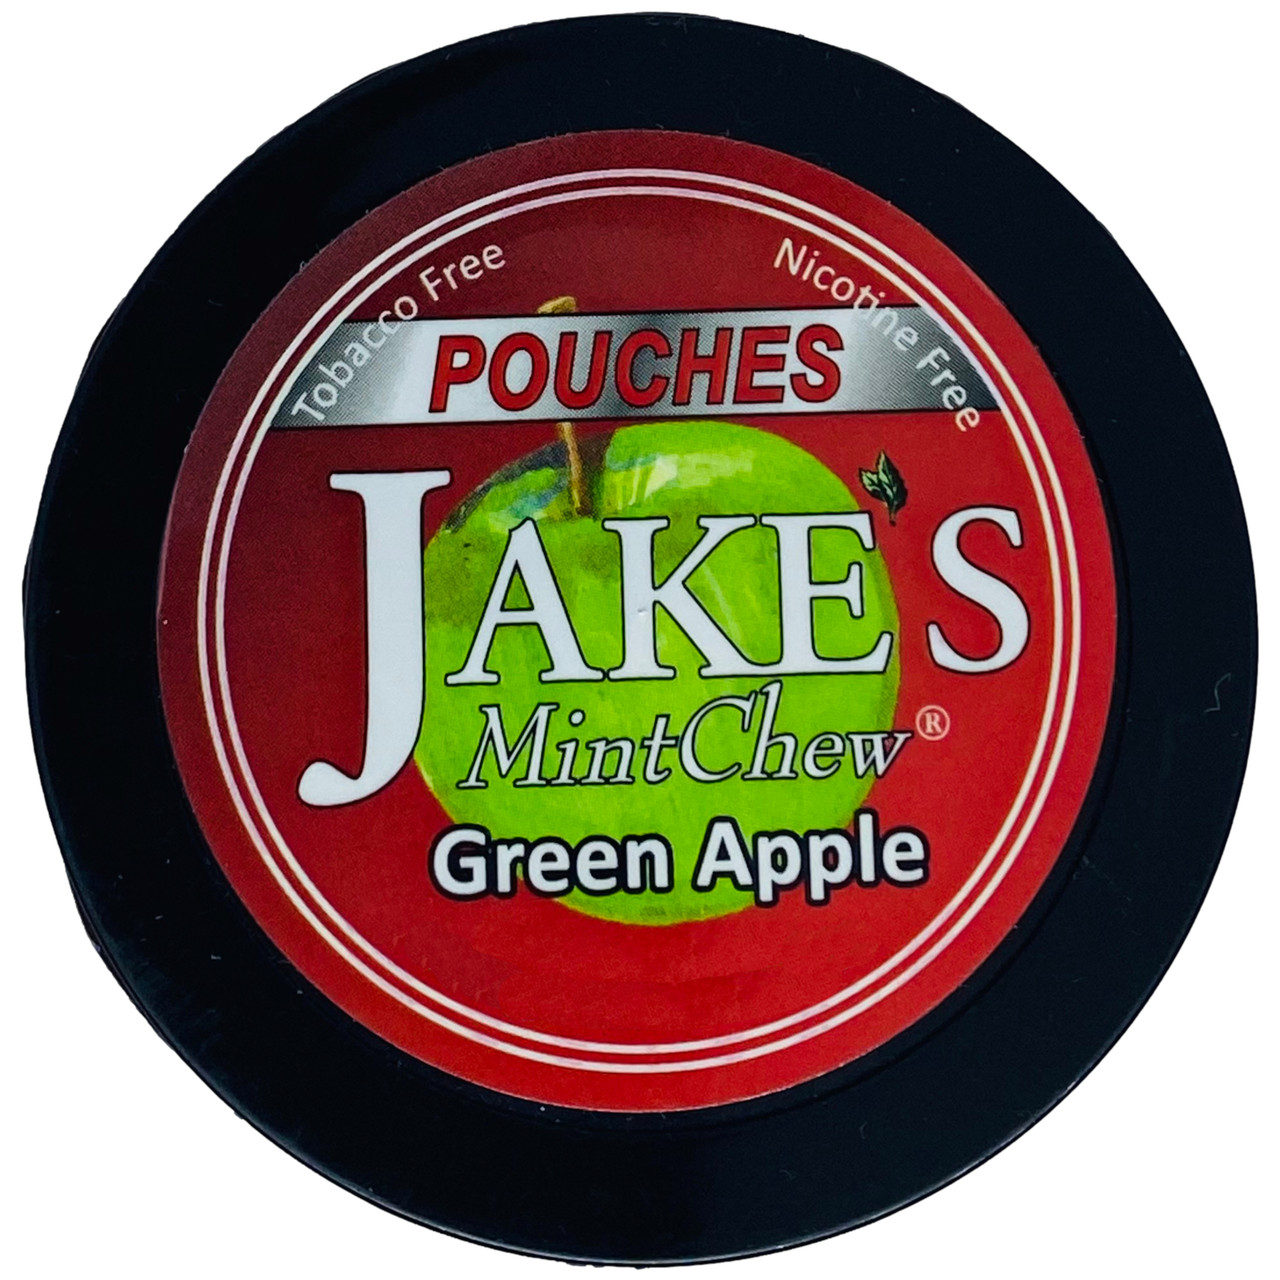 Jake's Mint Chew Pouches Green Apple 1 Can